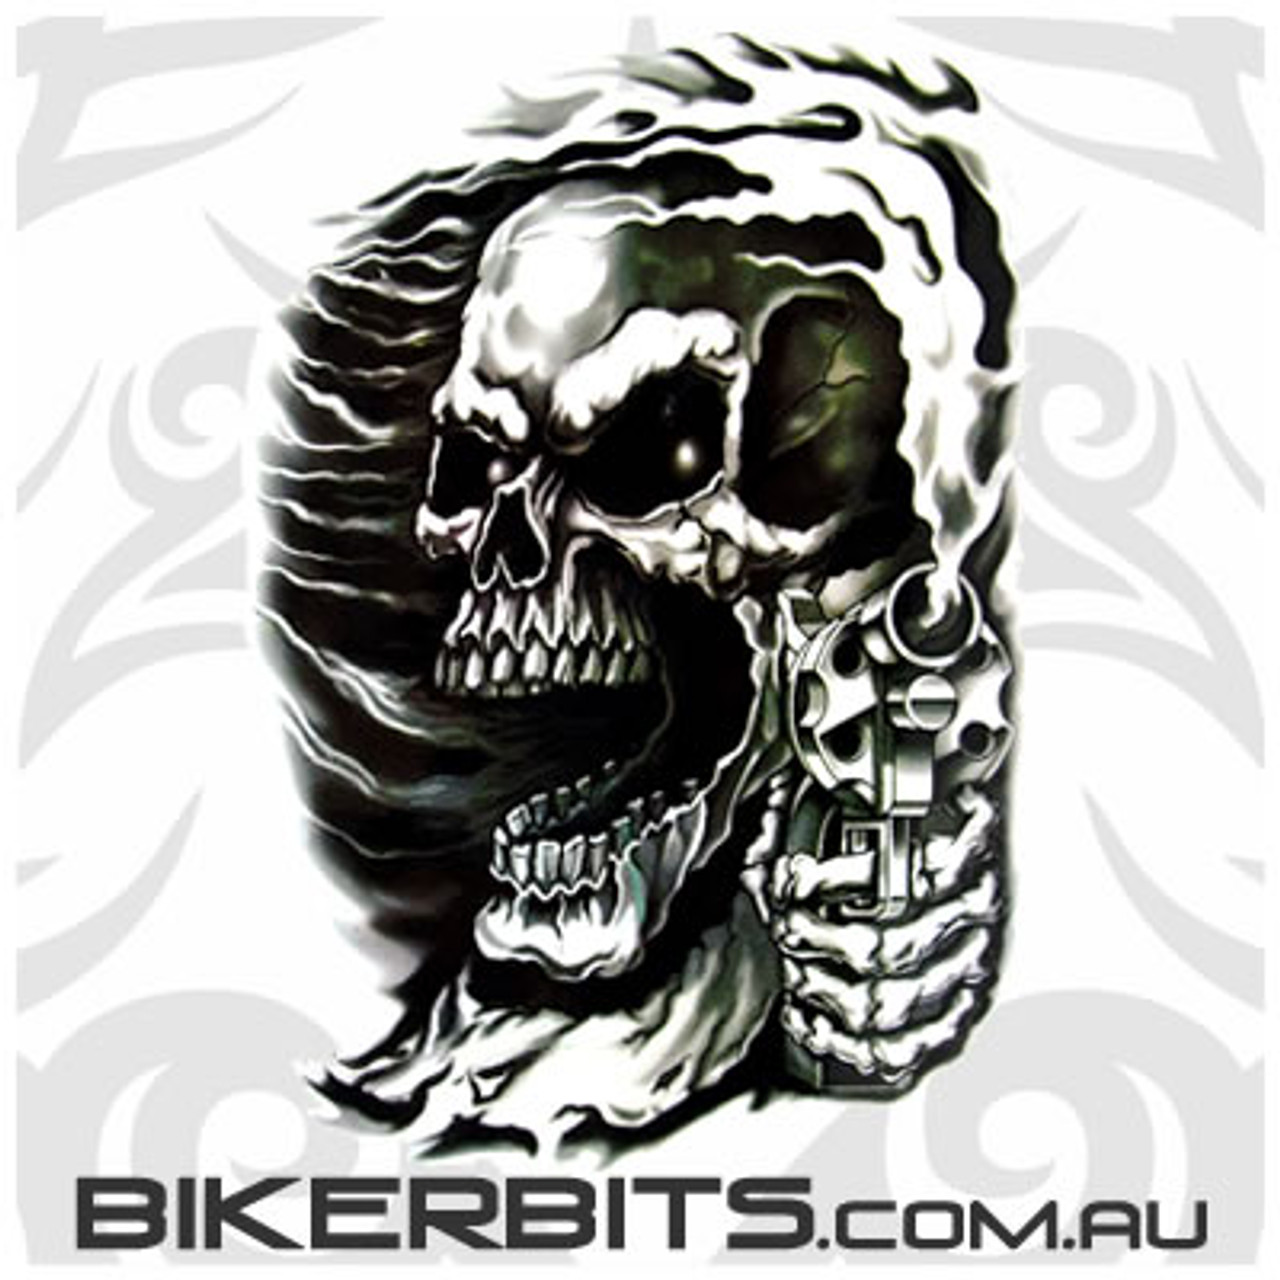 Biker Decal - Assassin